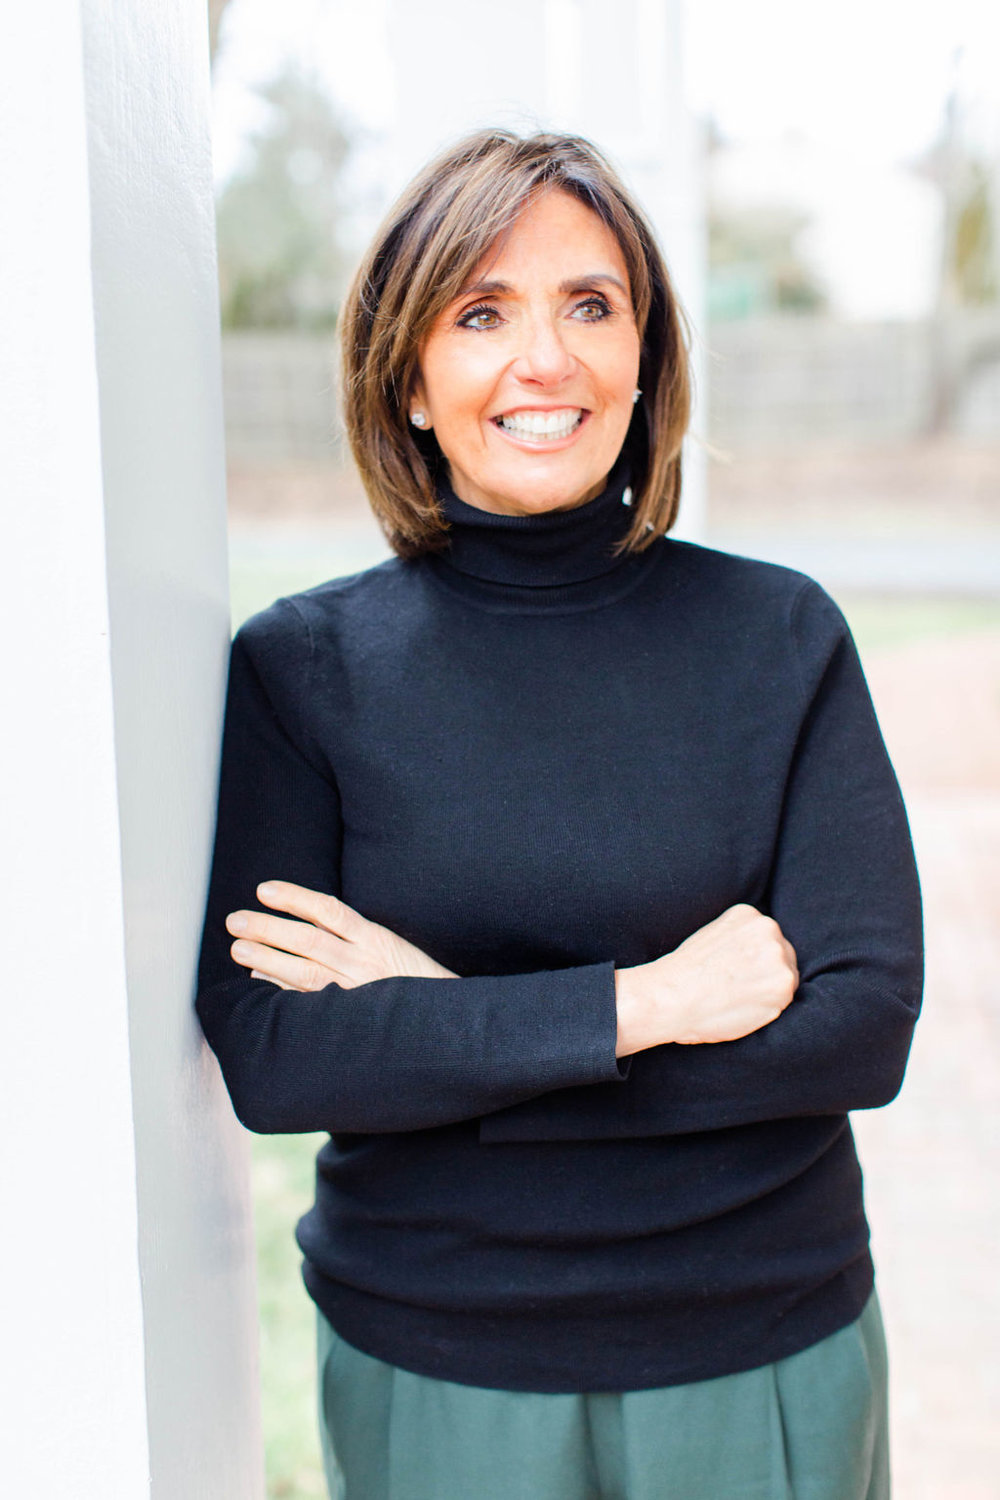 Patricia Reilly Koch - Tricia lives her life to the fullest. She emphasizes excitement over routine and incorporates curiosity and acceptance into her daily life. She is a firm believer that the mind and body are interconnected.